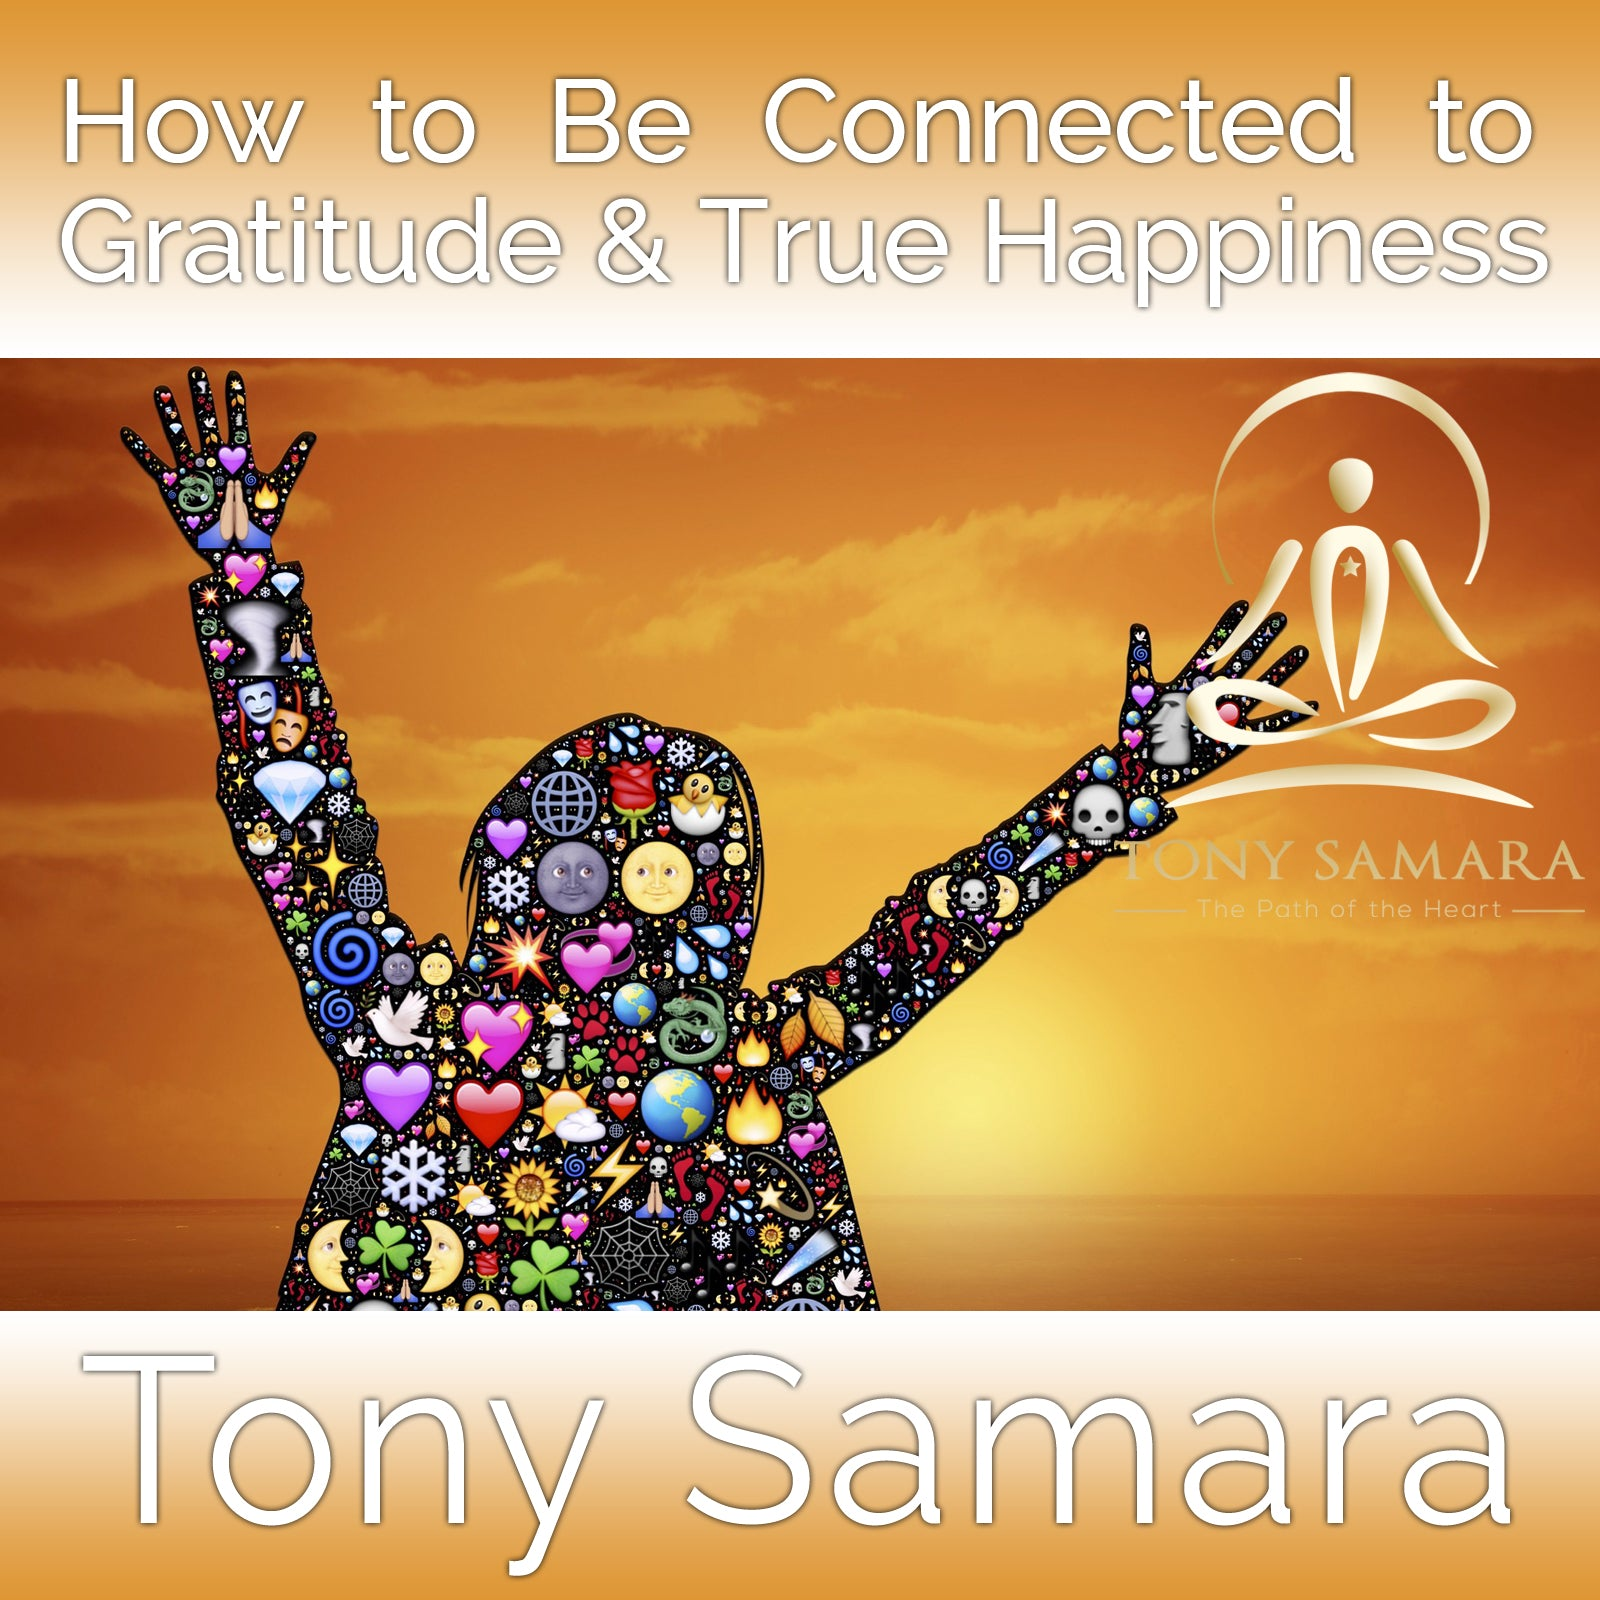 How to Be Connected to Gratitude & True Happiness (MP3 Audio Download) - Tony Samara Meditation